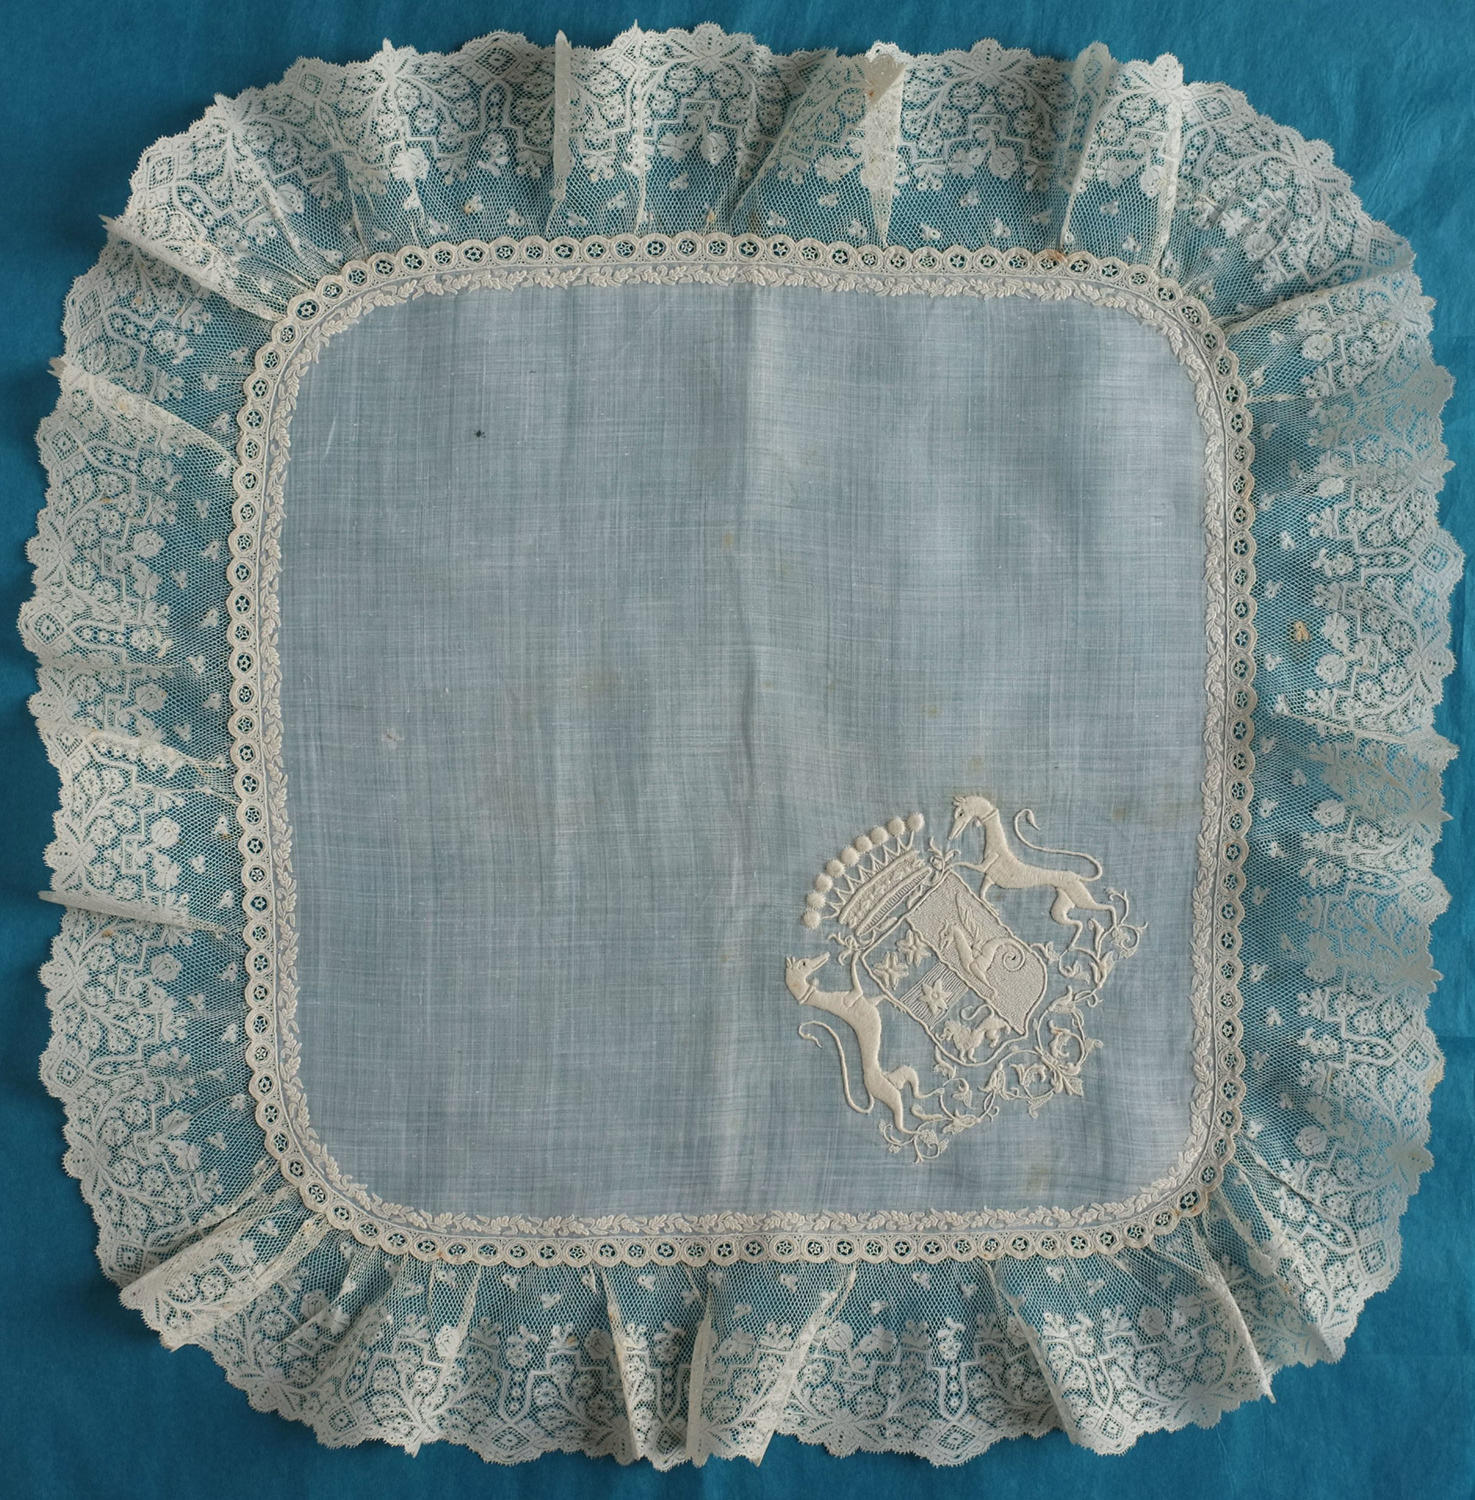 19th Century Handkerchief with the crest of Goislard de Villebresme